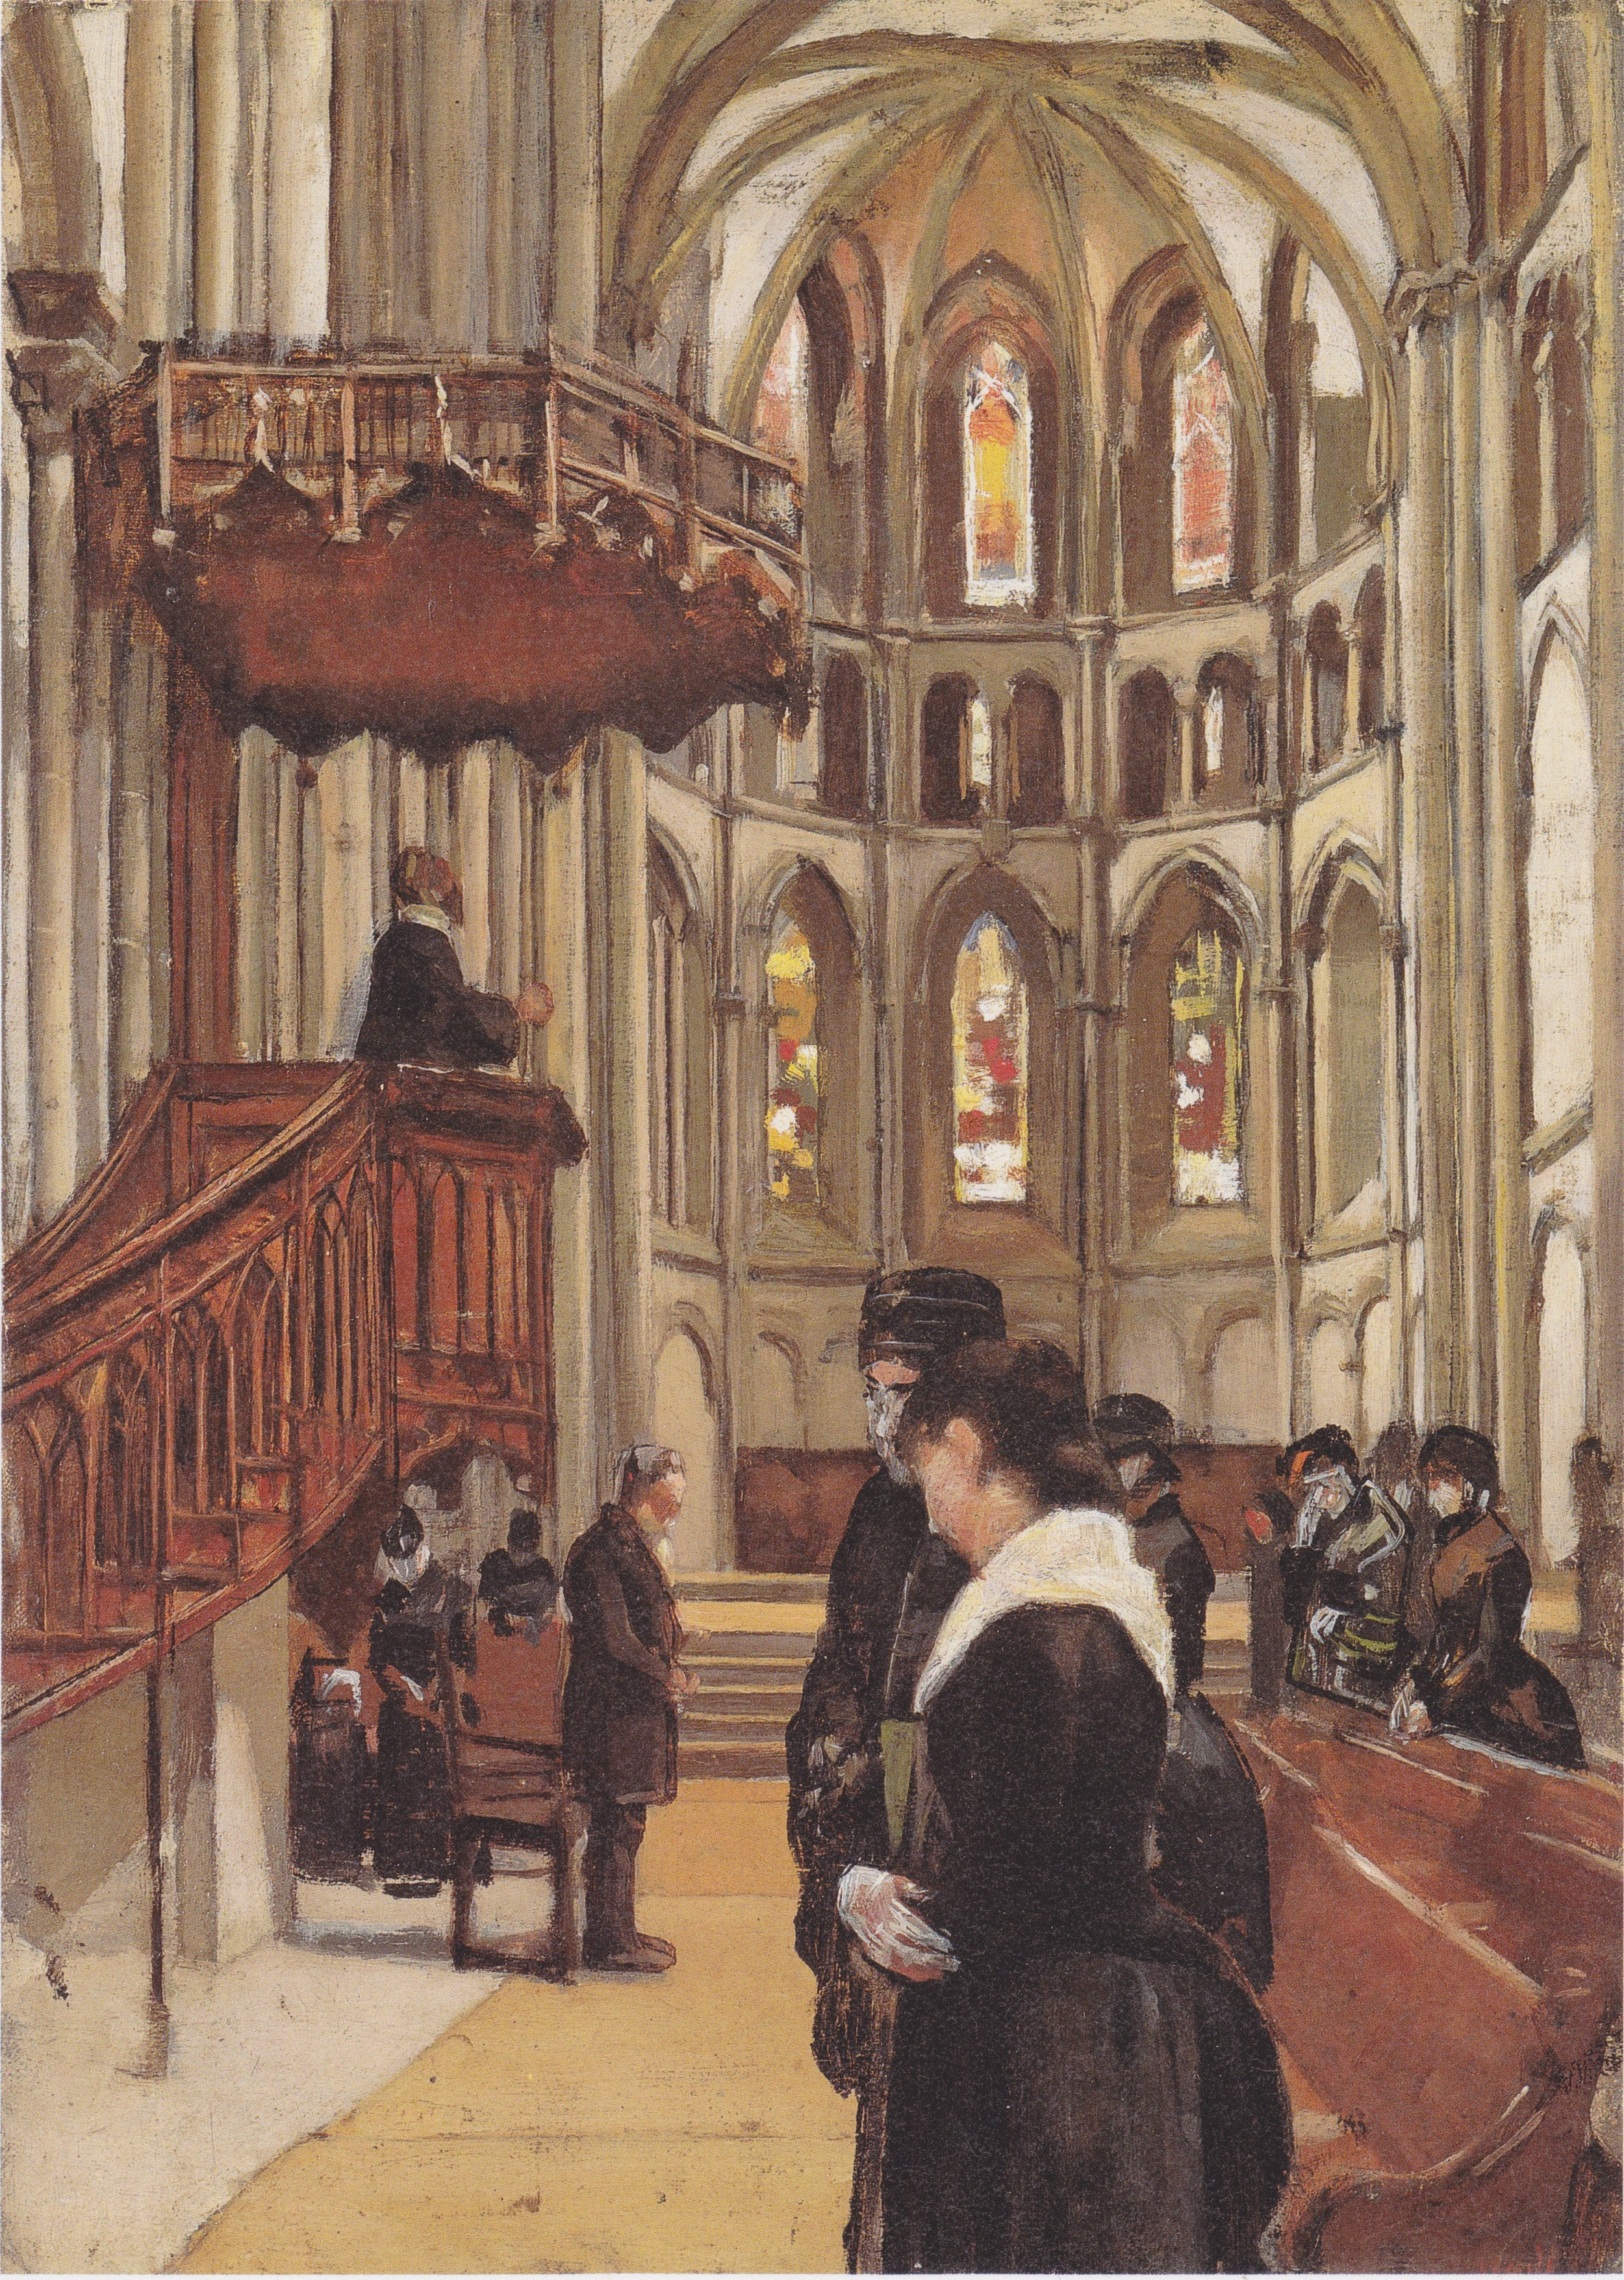 prayer-in-the-saint-pierre-cathedral-in-geneva-1882.jpg